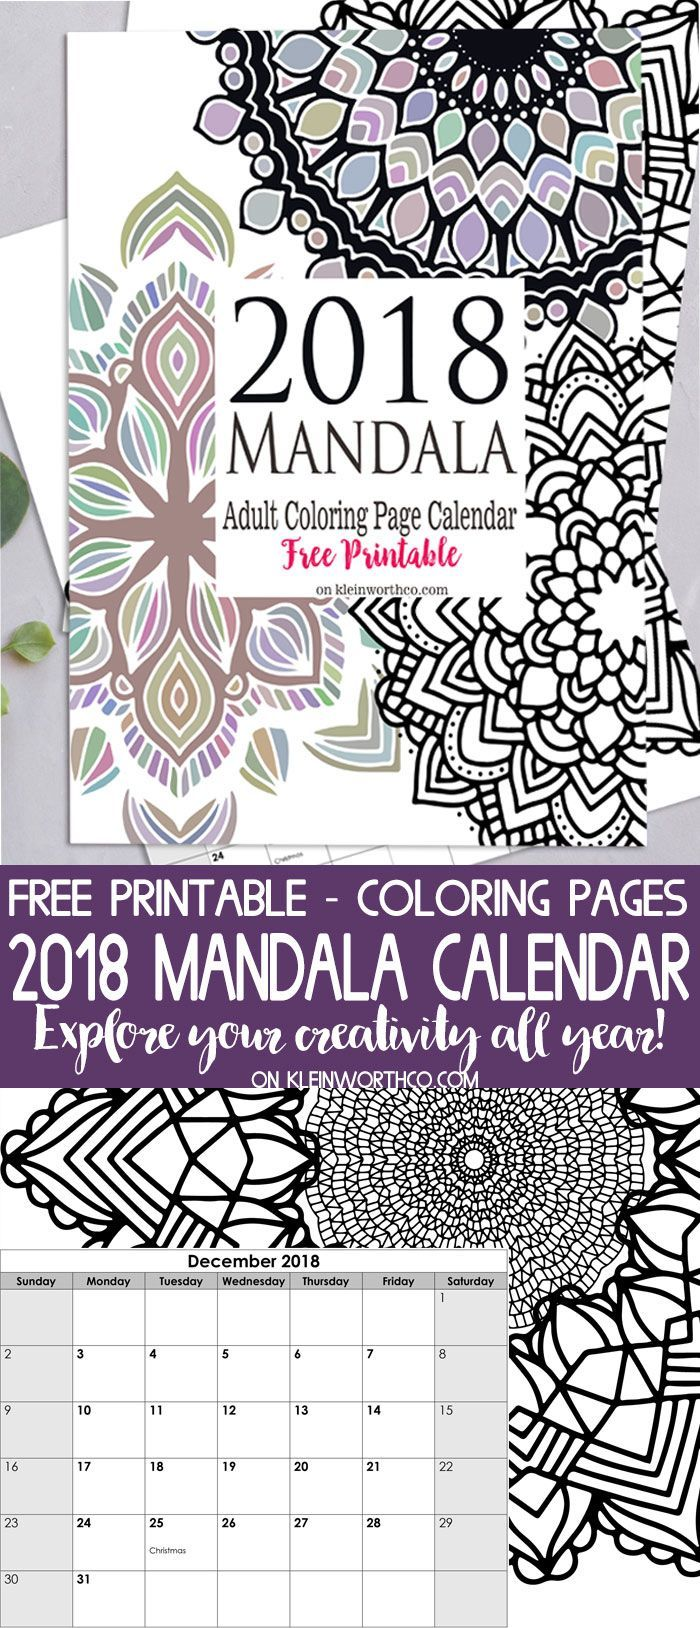 mandala adult coloring page calendar is a free printable to